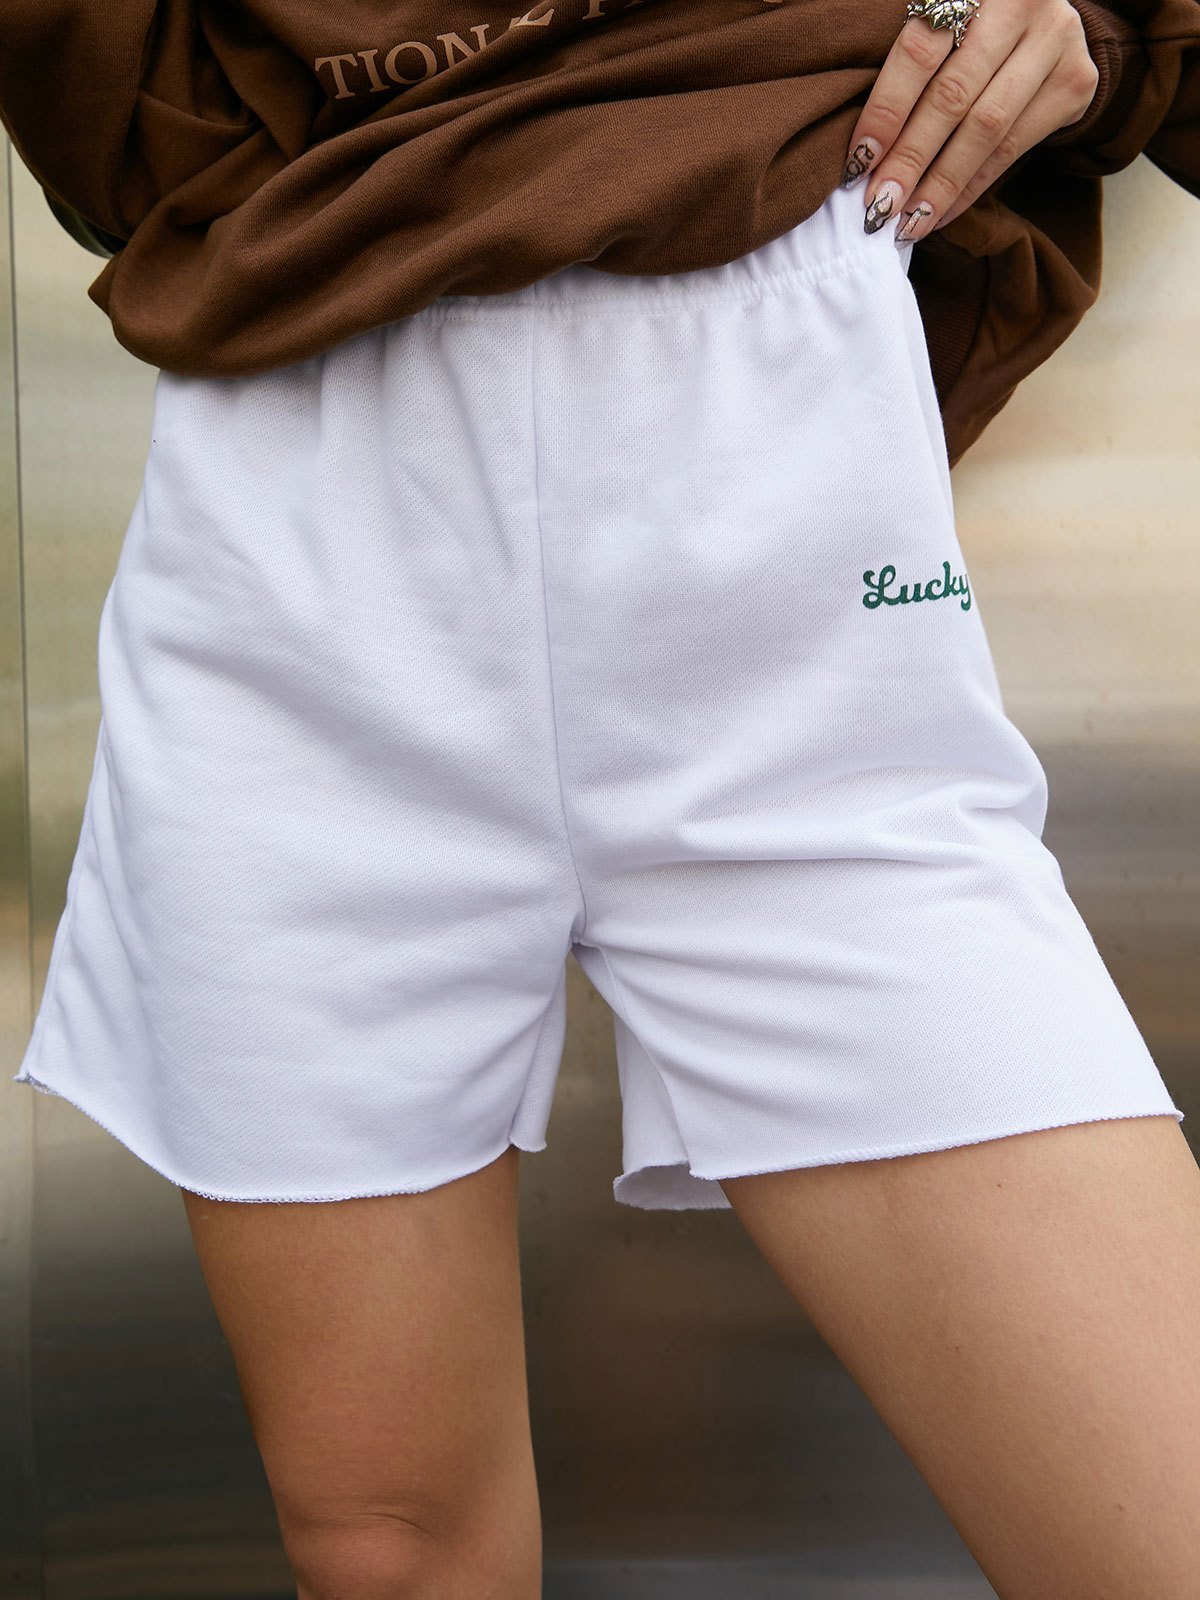 Lucky Me Sweat Shorts - White S